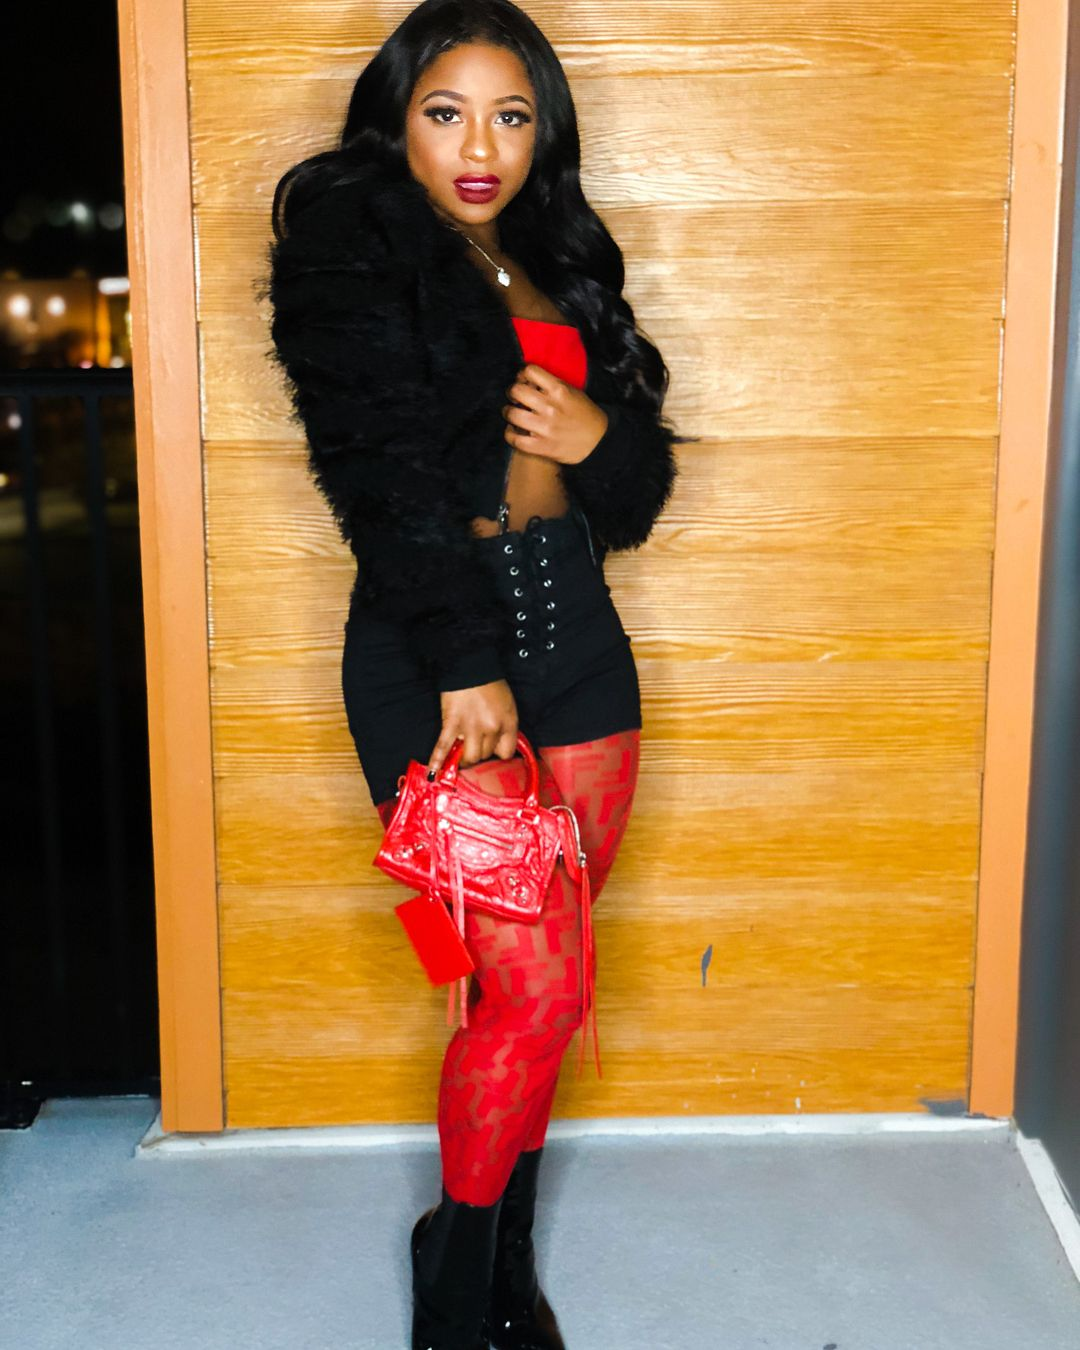 Reginae Carter | Outfits, Trend setter, Leather pants